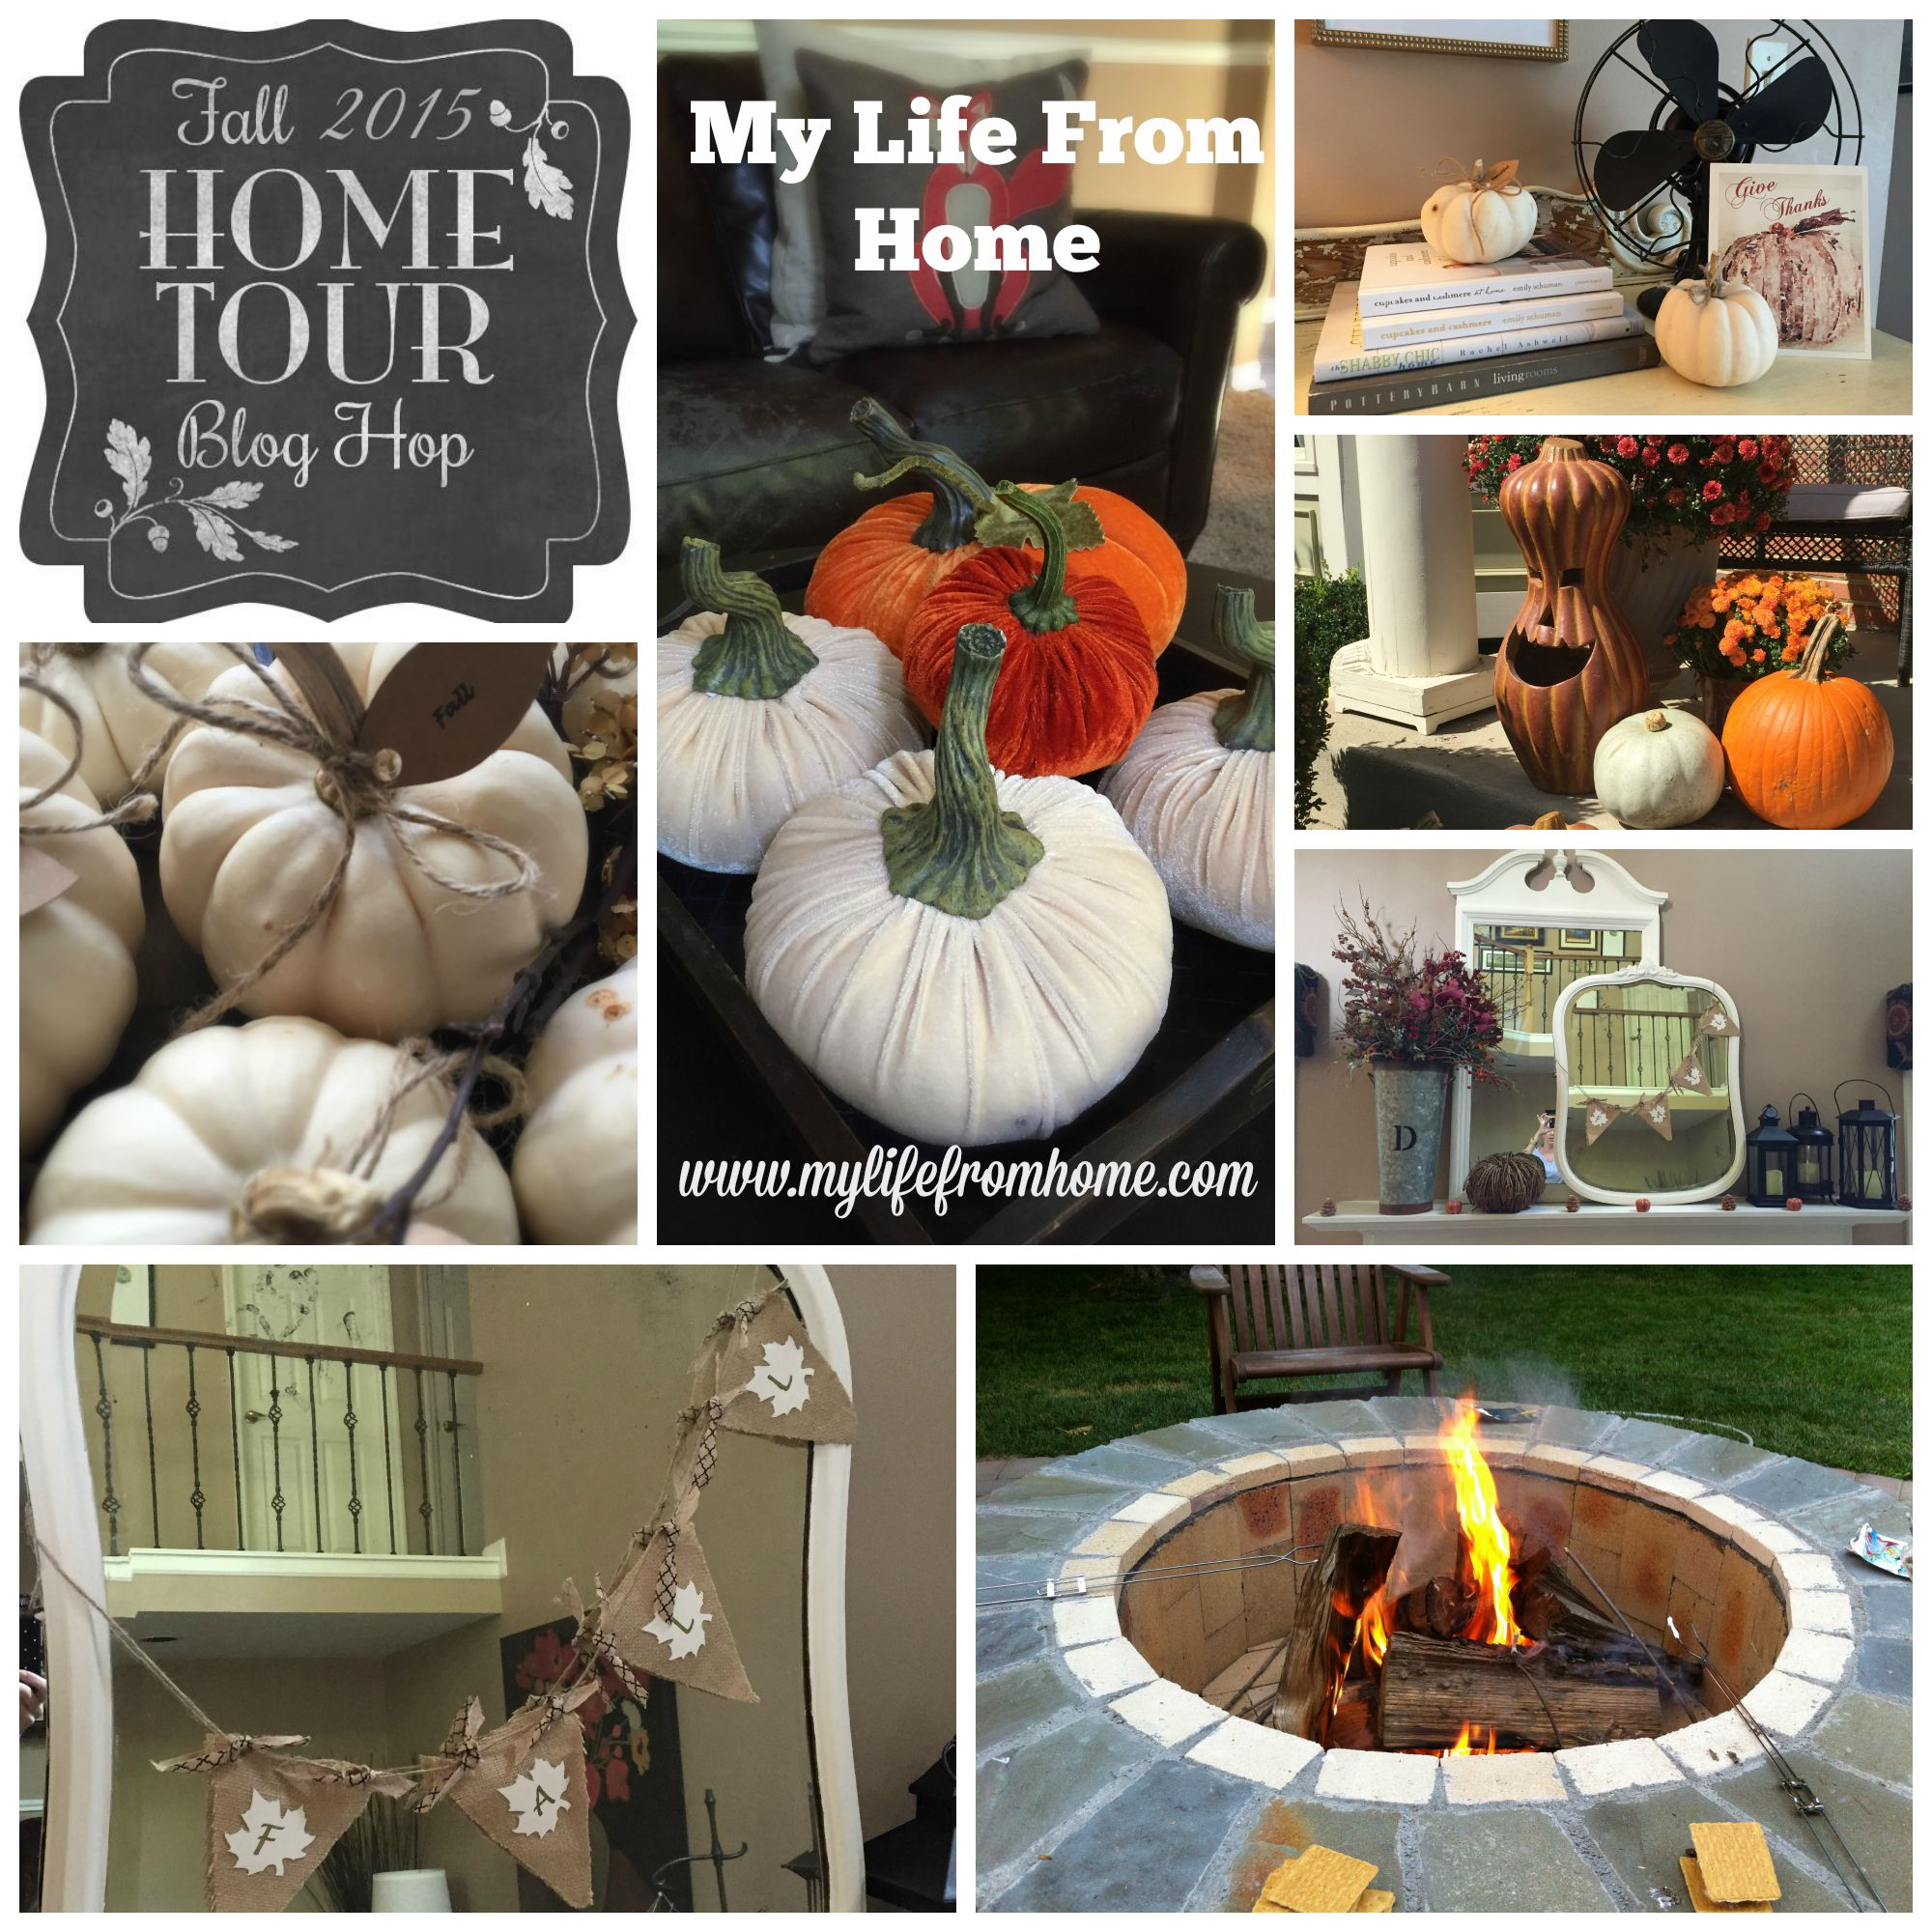 Fall Home Tour Blog Hop by www.mylifefromhome.com